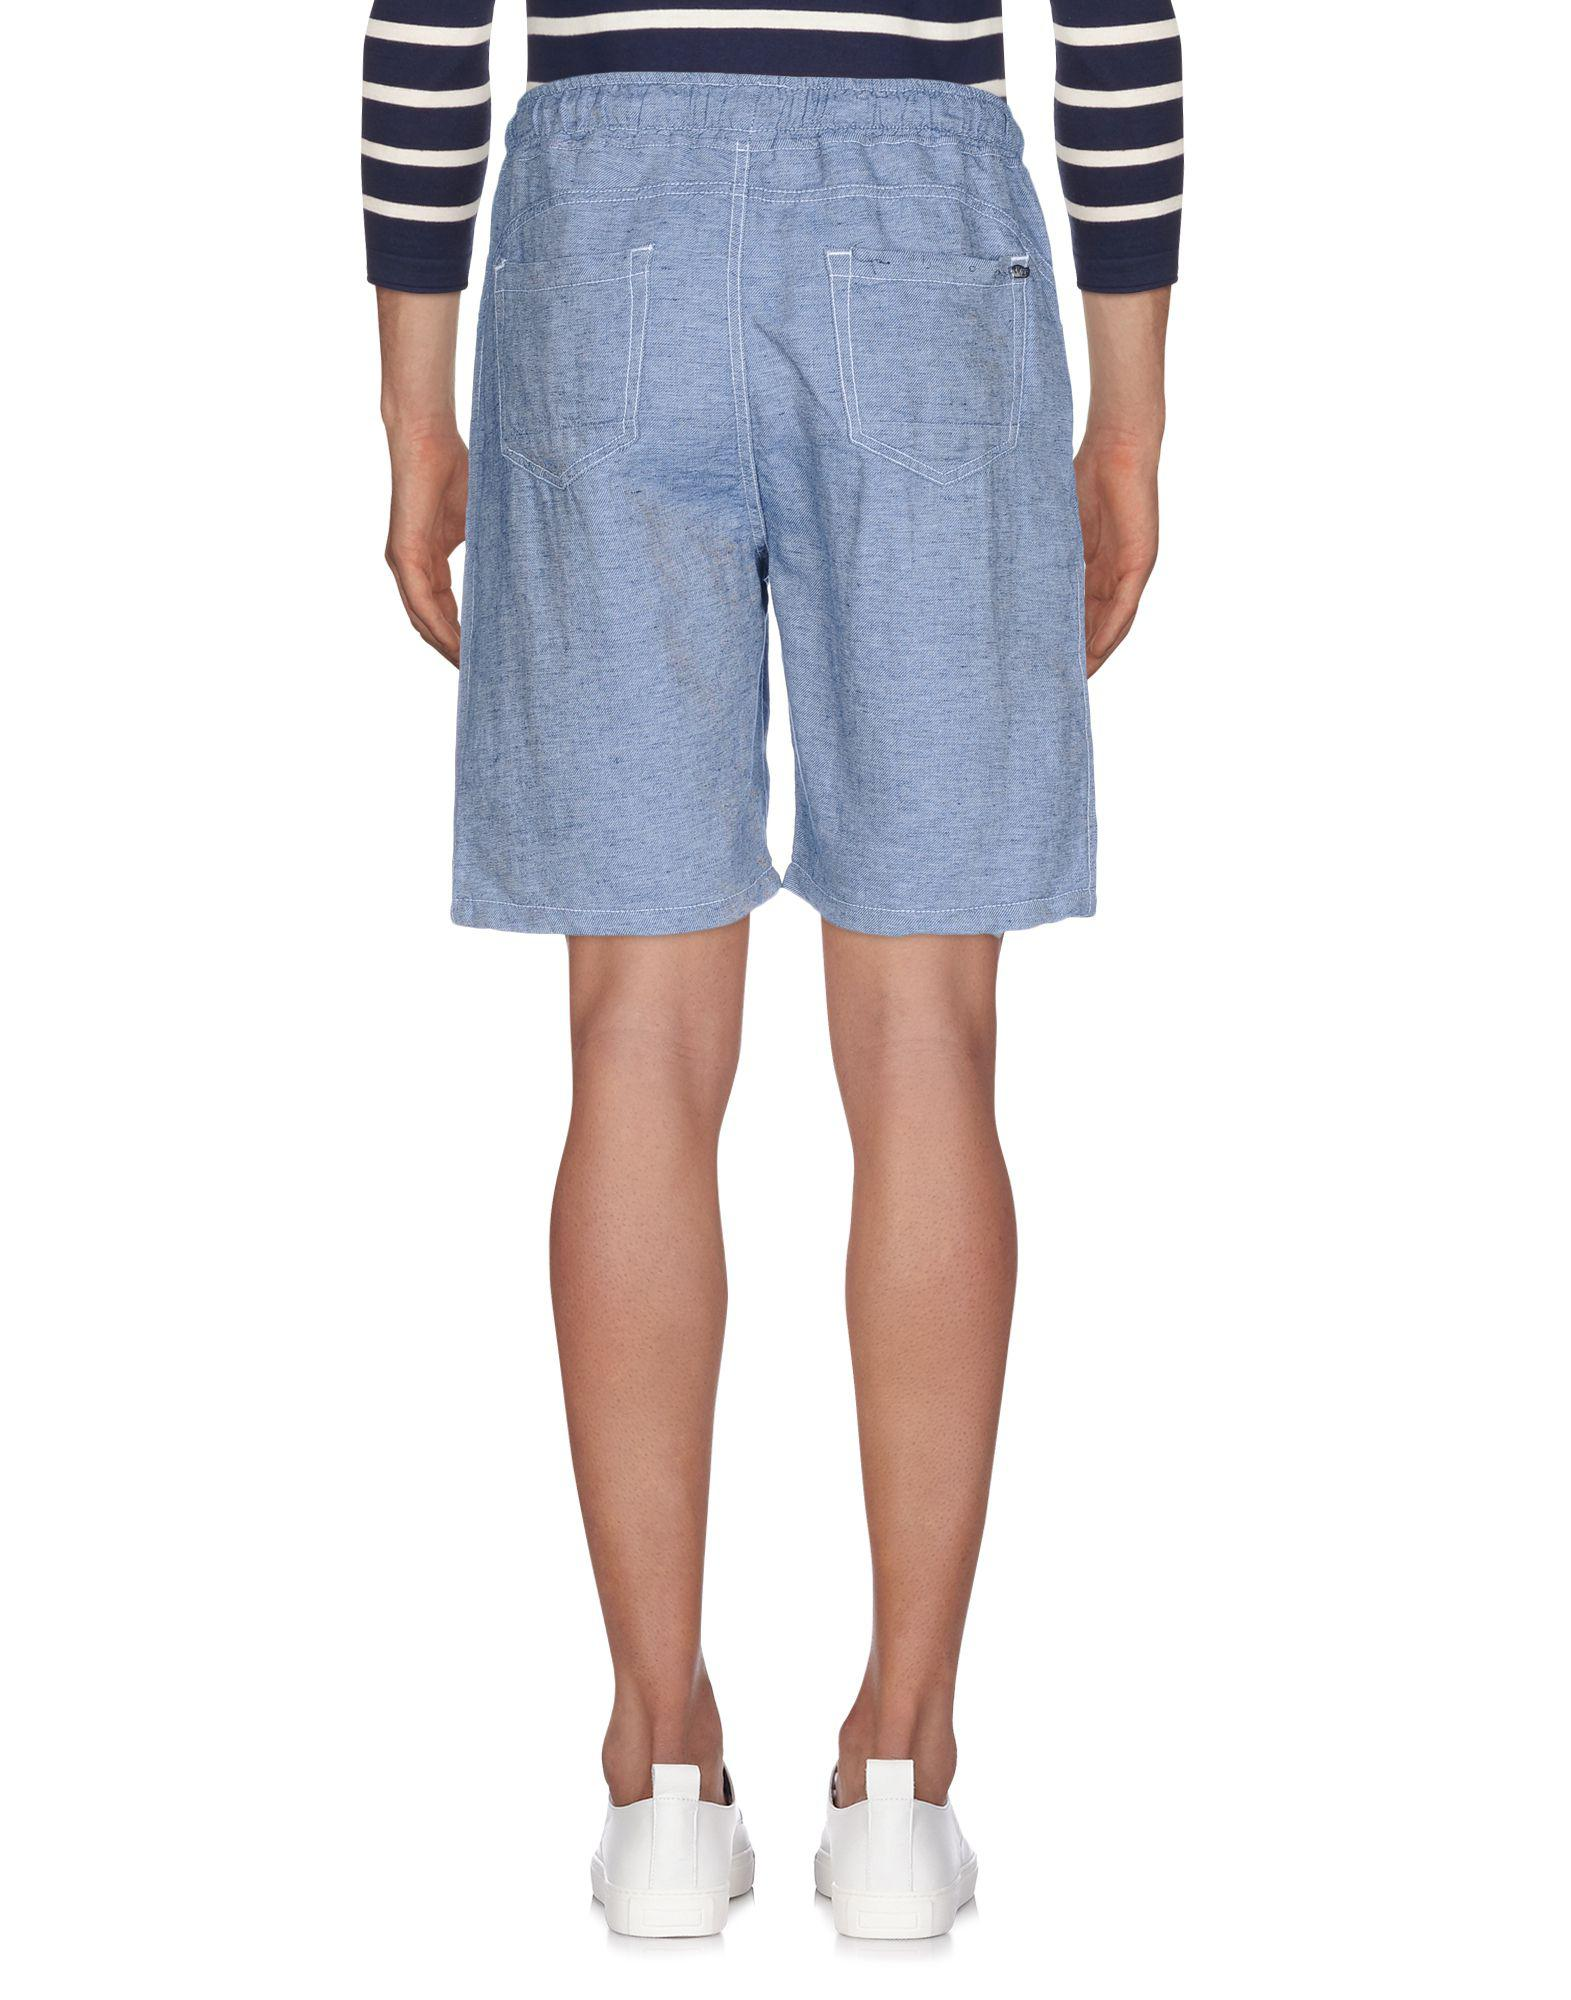 DENIM - Denim bermudas Takeshy Kurosawa Buy Cheap Fast Delivery Free Shipping Low Cost DabiKp